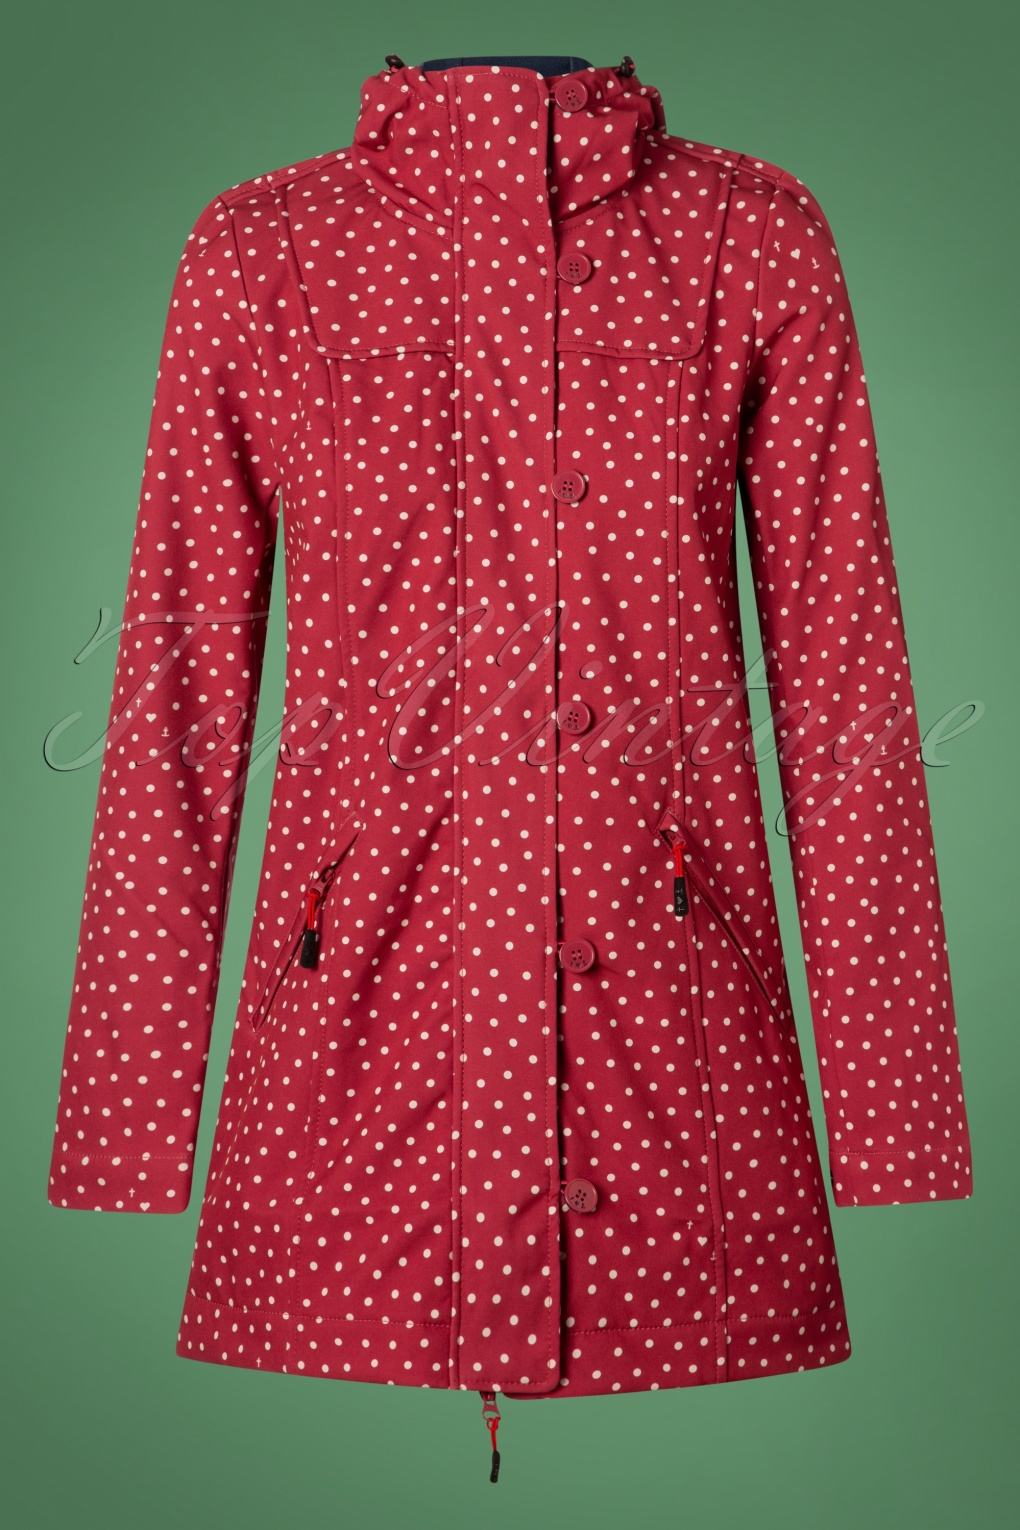 Vintage Coats & Jackets | Retro Coats and Jackets 60s Wild Weather Long Anorak in Dot and Love Red £133.91 AT vintagedancer.com